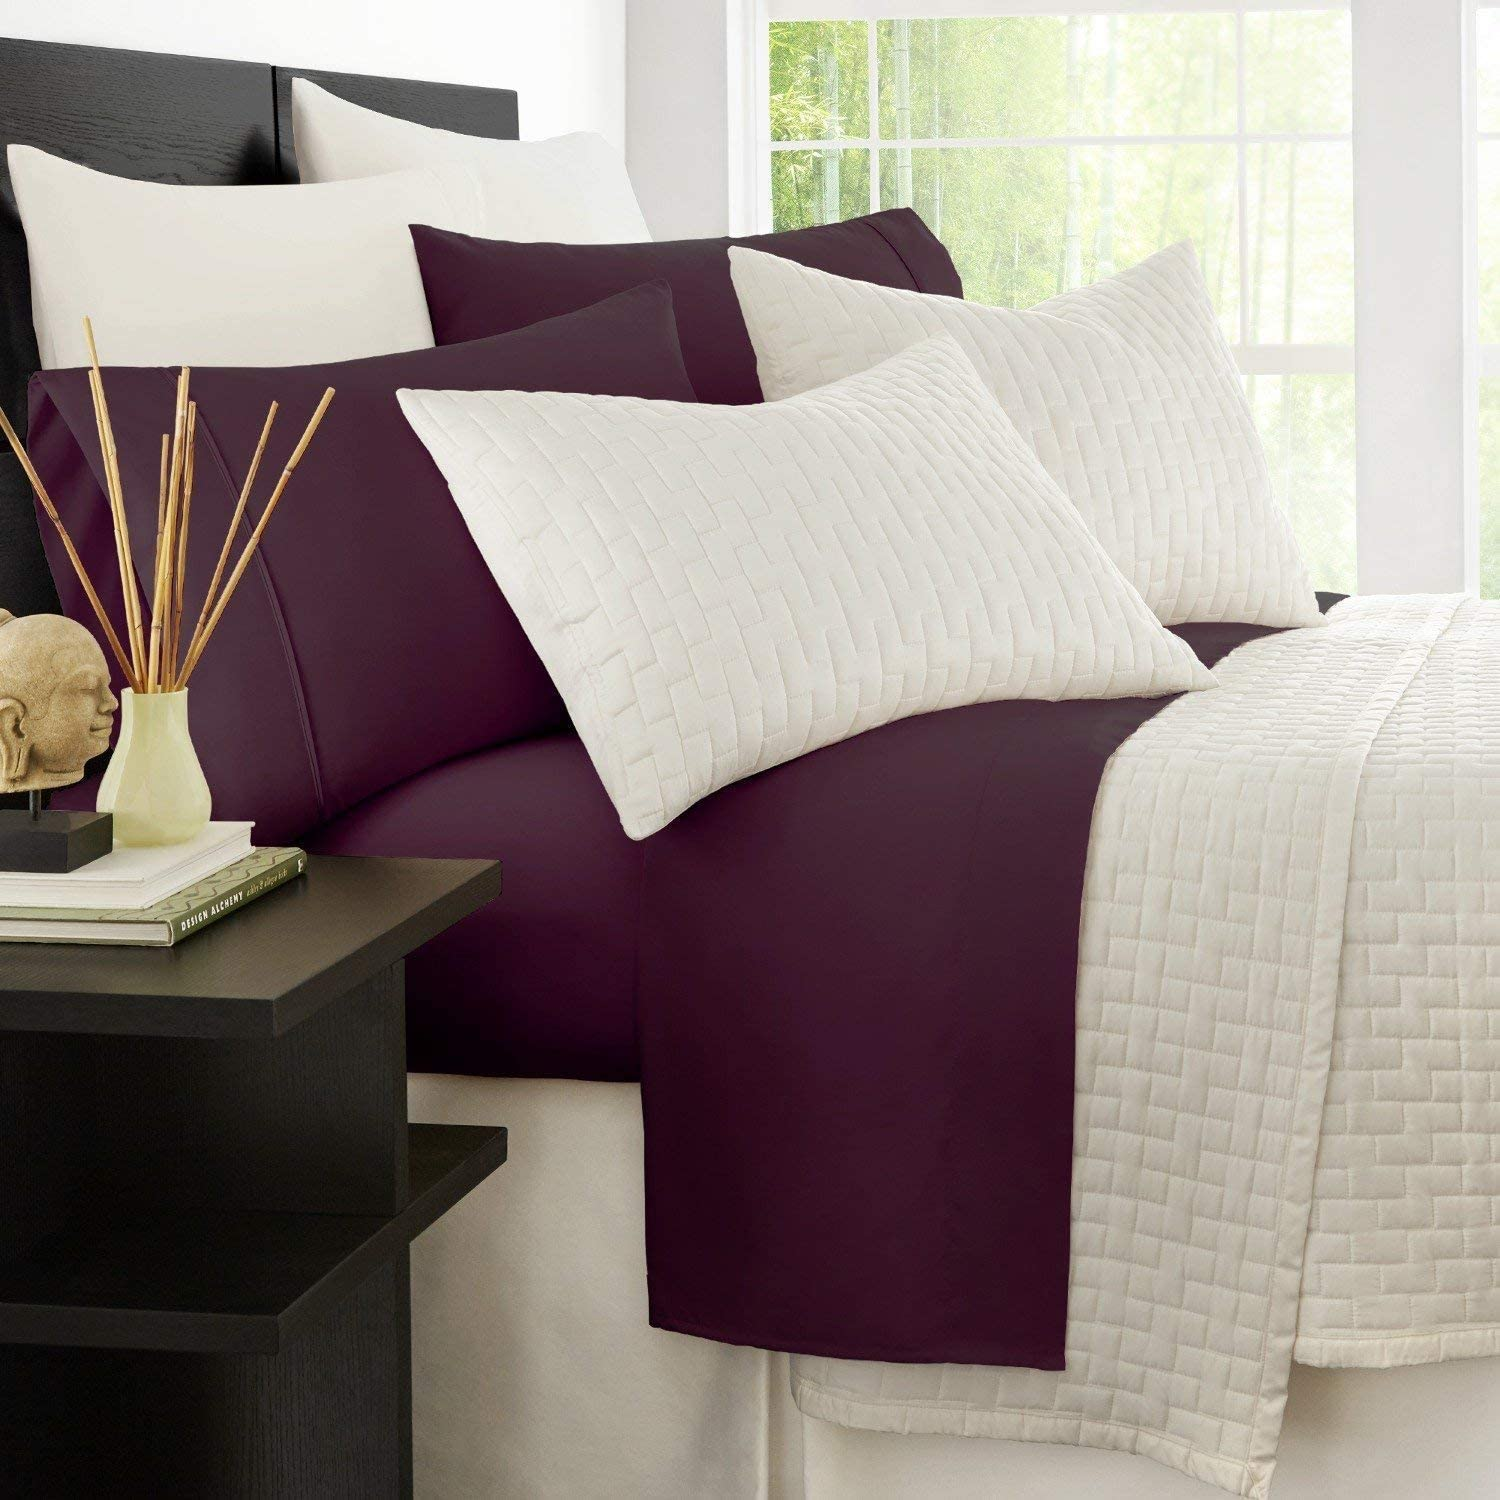 Zen Bamboo 1800 Series Luxury Bed Sheets - Eco-Friendly, Hypoallergenic and Wrinkle Resistant Rayon Derived from Bamboo - 4-Piece - King - Purple